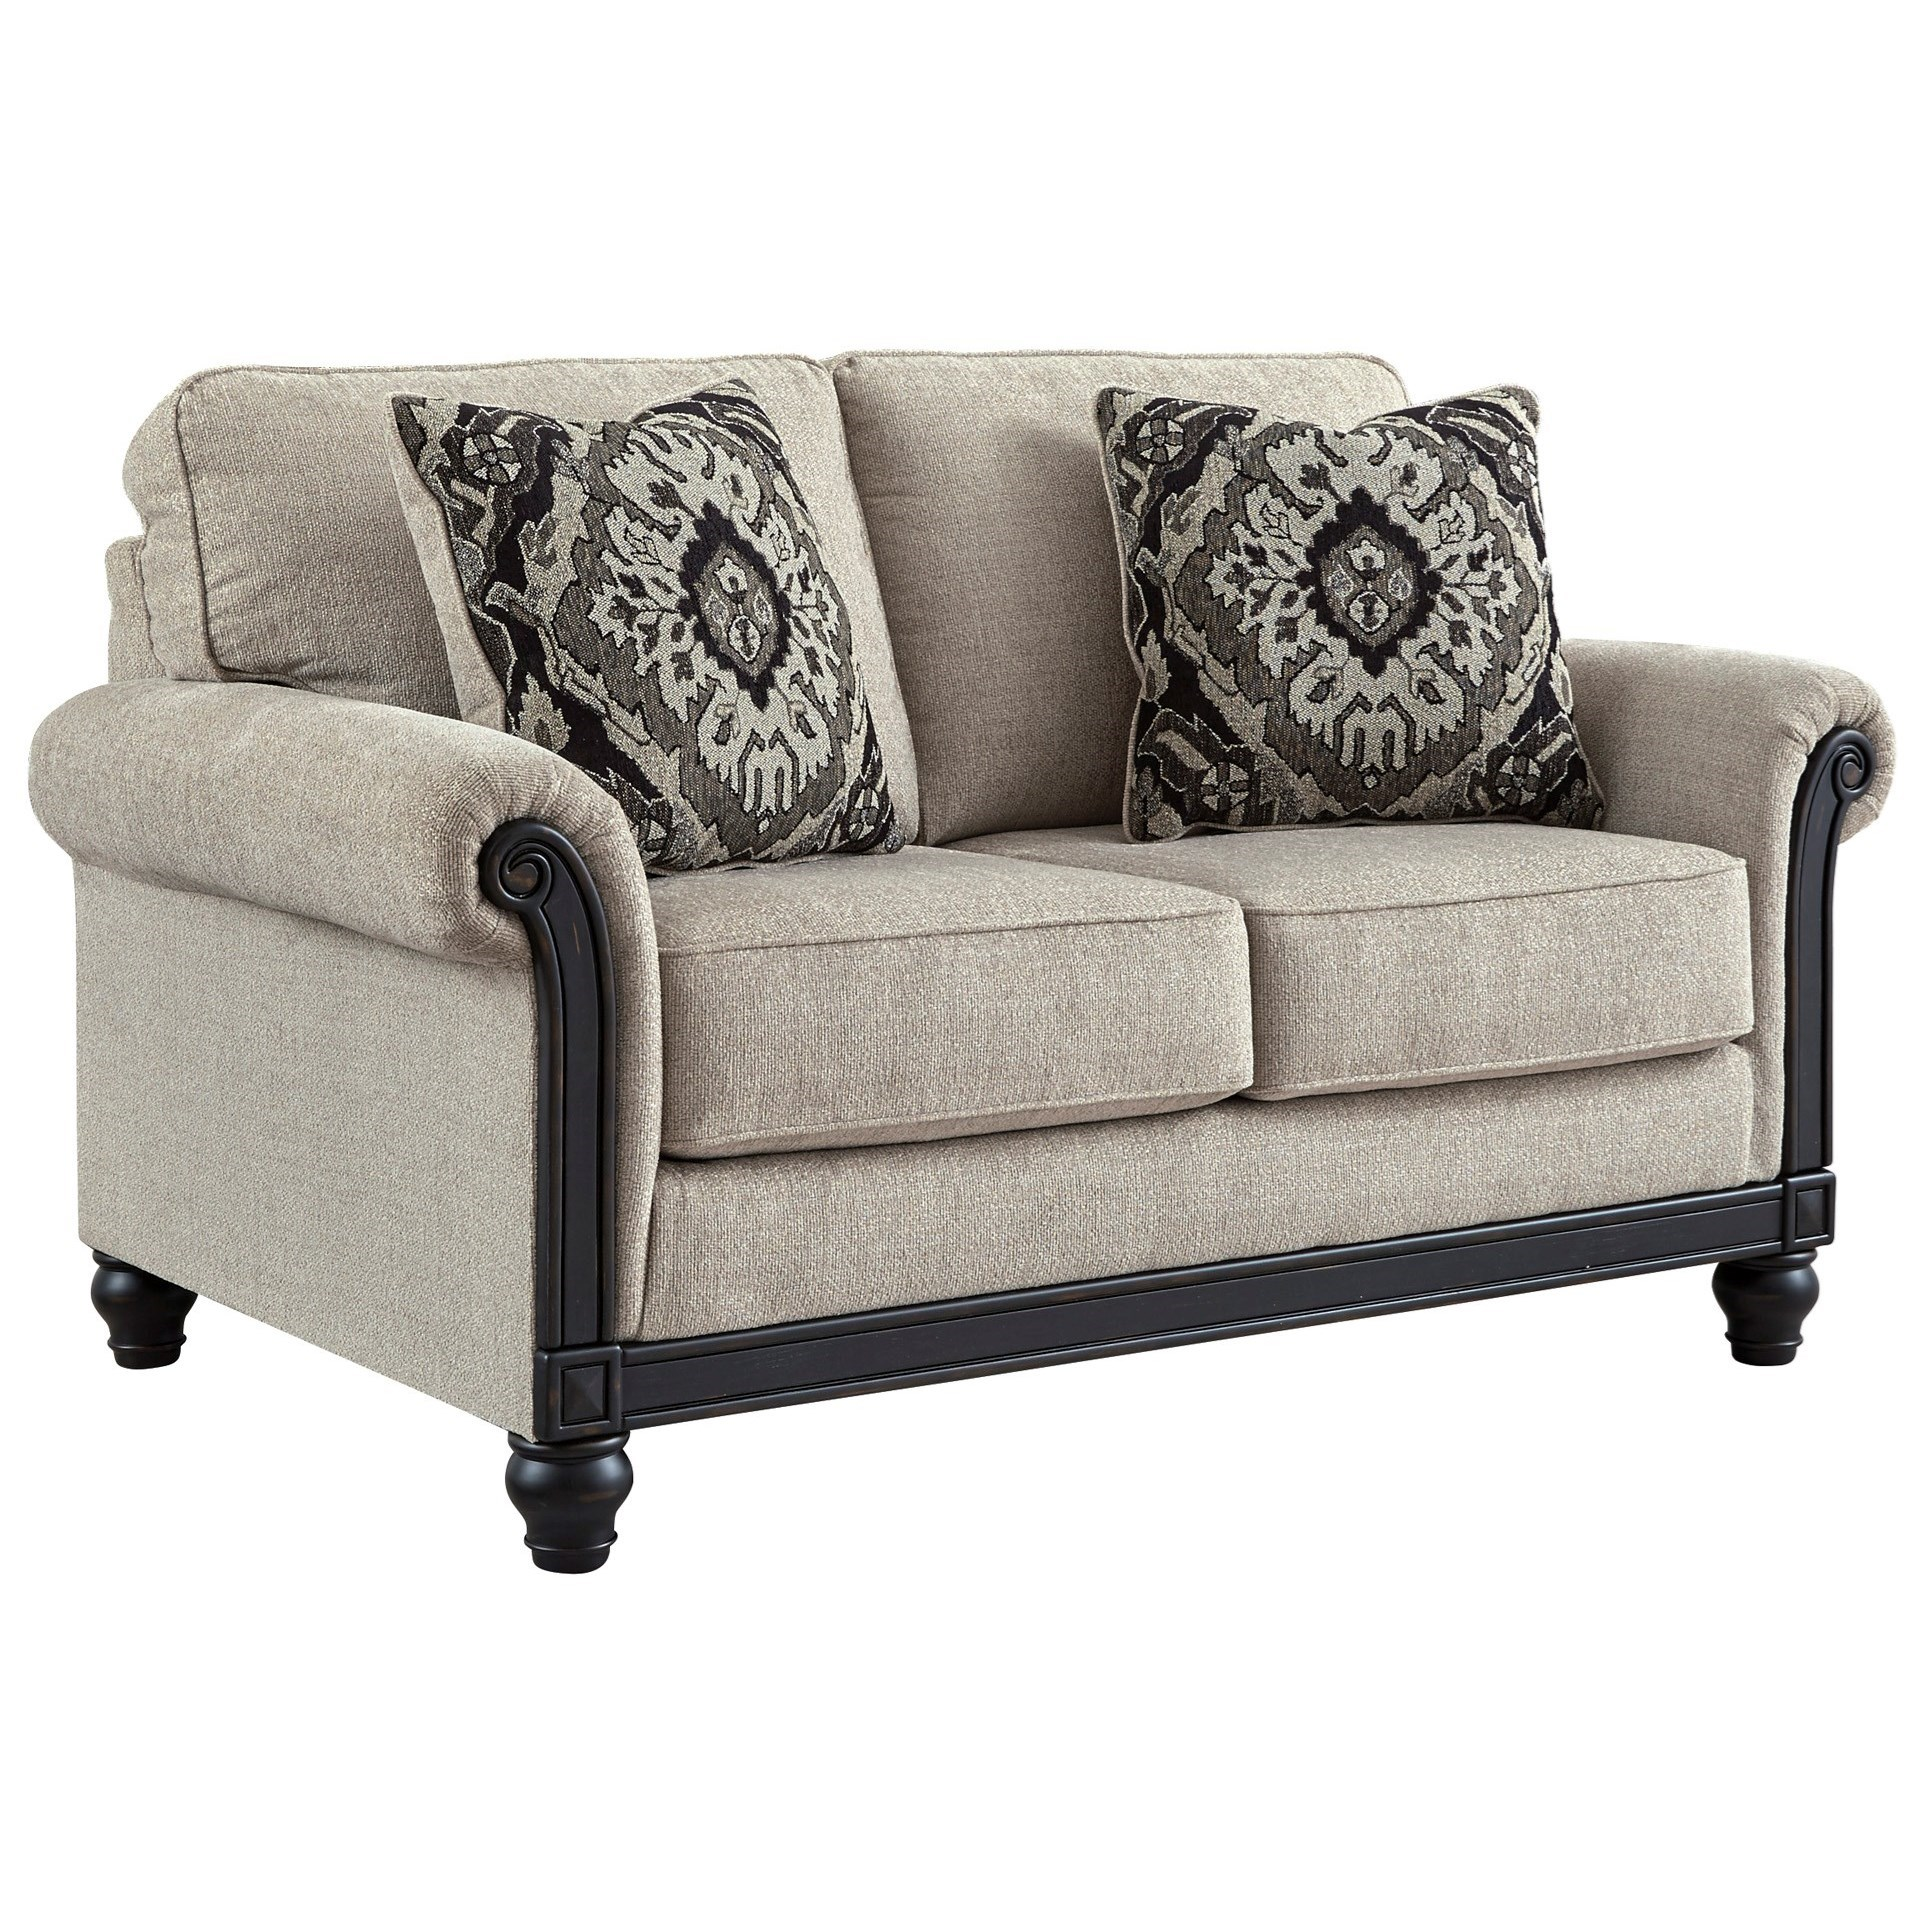 Benbrook Loveseat by Signature Design by Ashley at Rife's Home Furniture